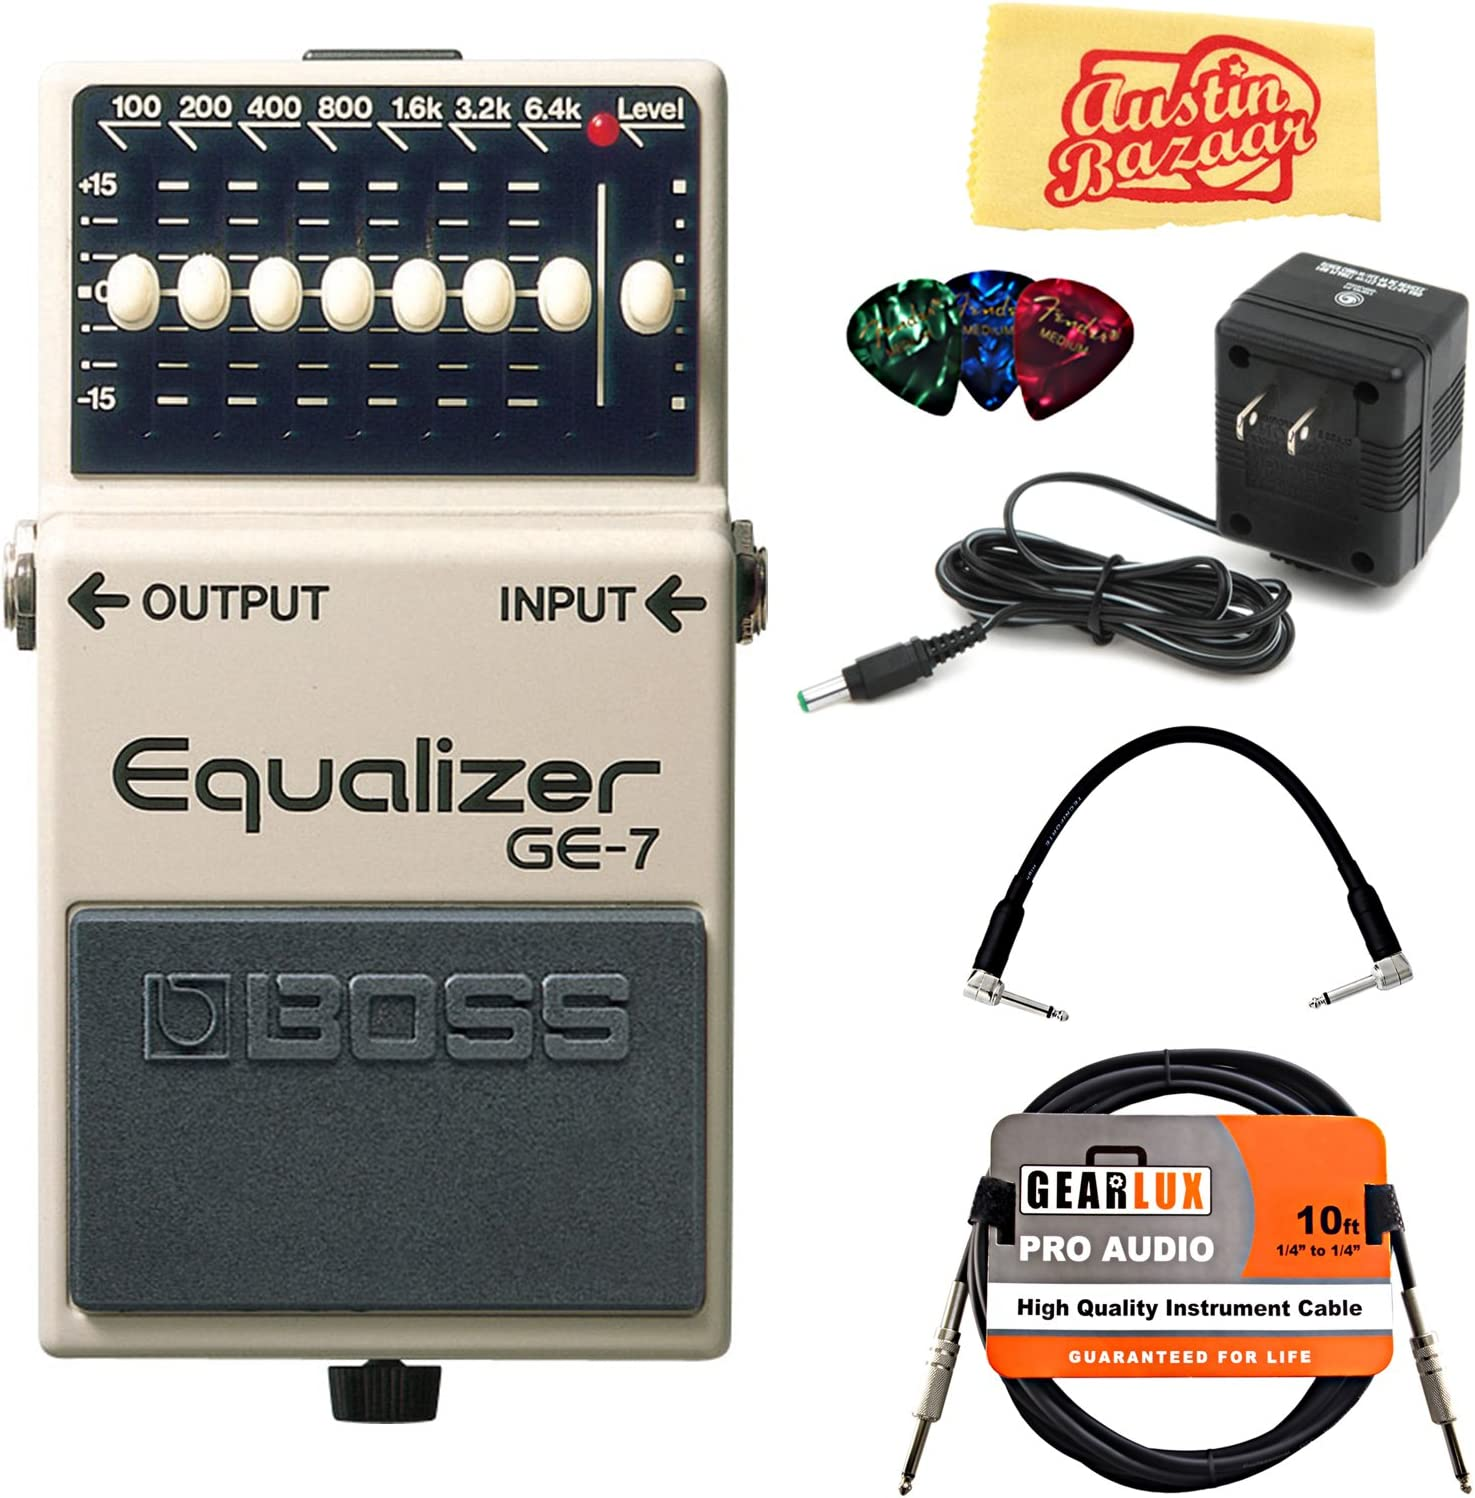 BOSS GE-7 Graphic Equalizer Bundle with Power Supply, Instrument Cable, Patch Cable, Picks, and Austin Bazaar Polishing Cloth